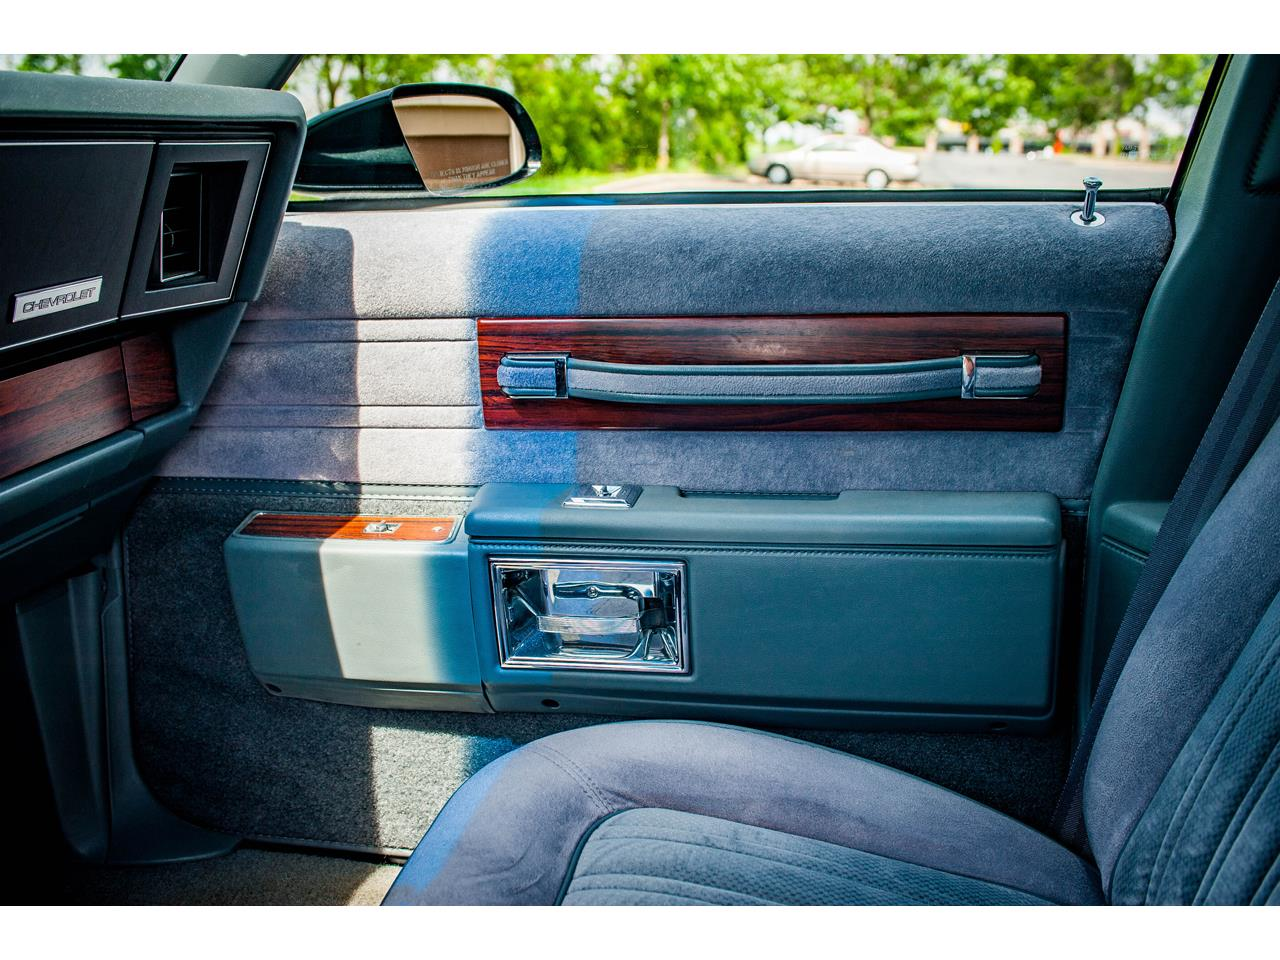 For Sale: 1989 Chevrolet Caprice in O'Fallon, Illinois